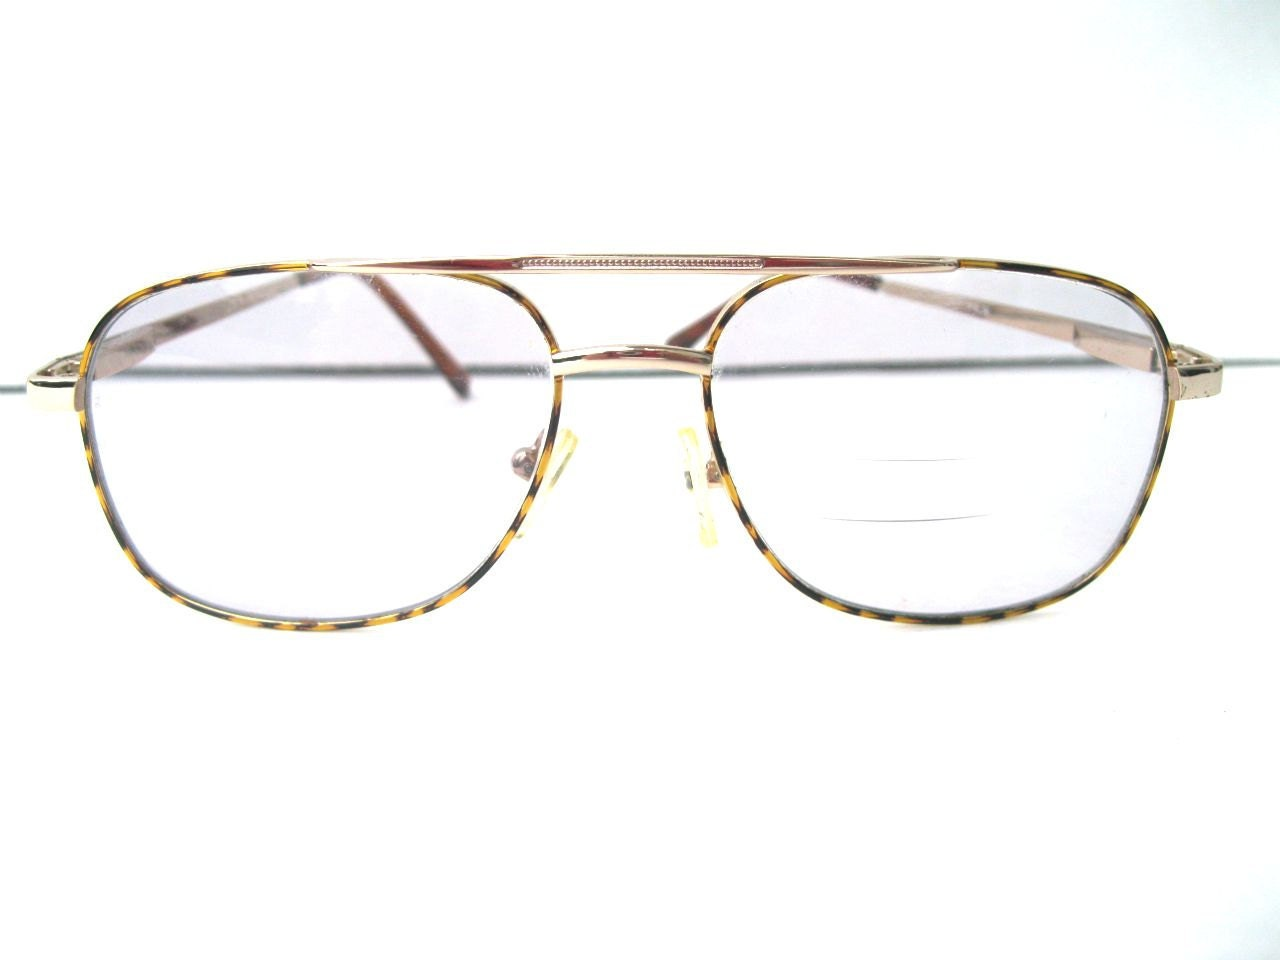 Eyeglass Frames Wire Rim : Vintage Aviator Style Wire Rimmed Eyeglasses by ...